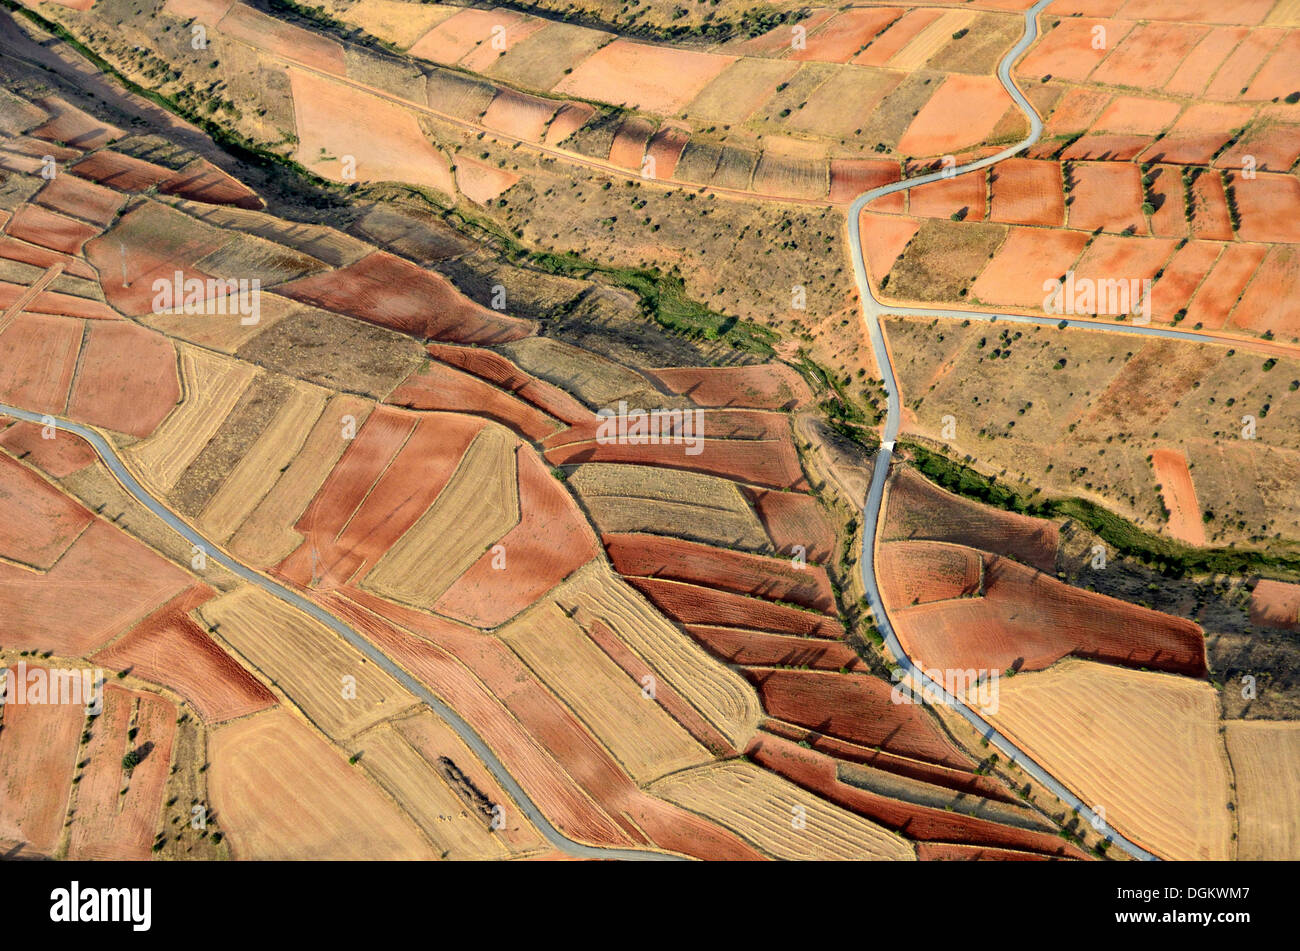 Aerial view, Castilian countryside, Soria, Castile and León, Spain - Stock Image